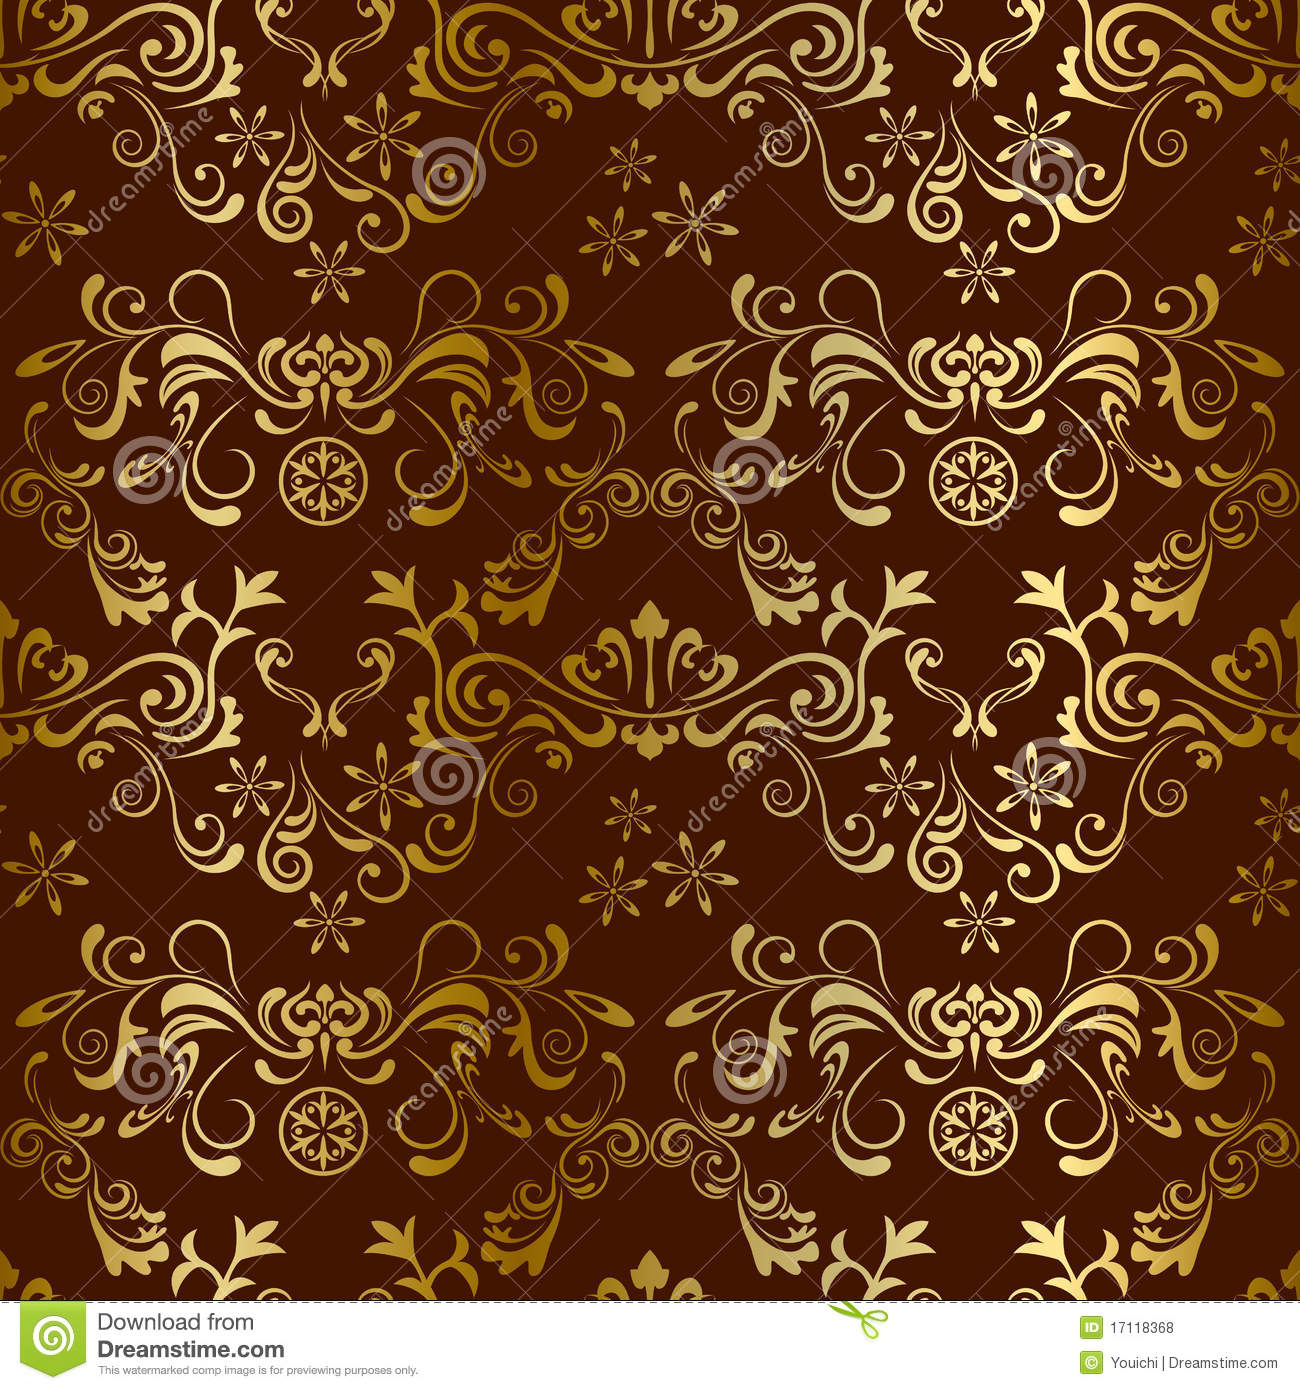 Abstract Seamless Floral Brown Pattern Royalty Free Stock